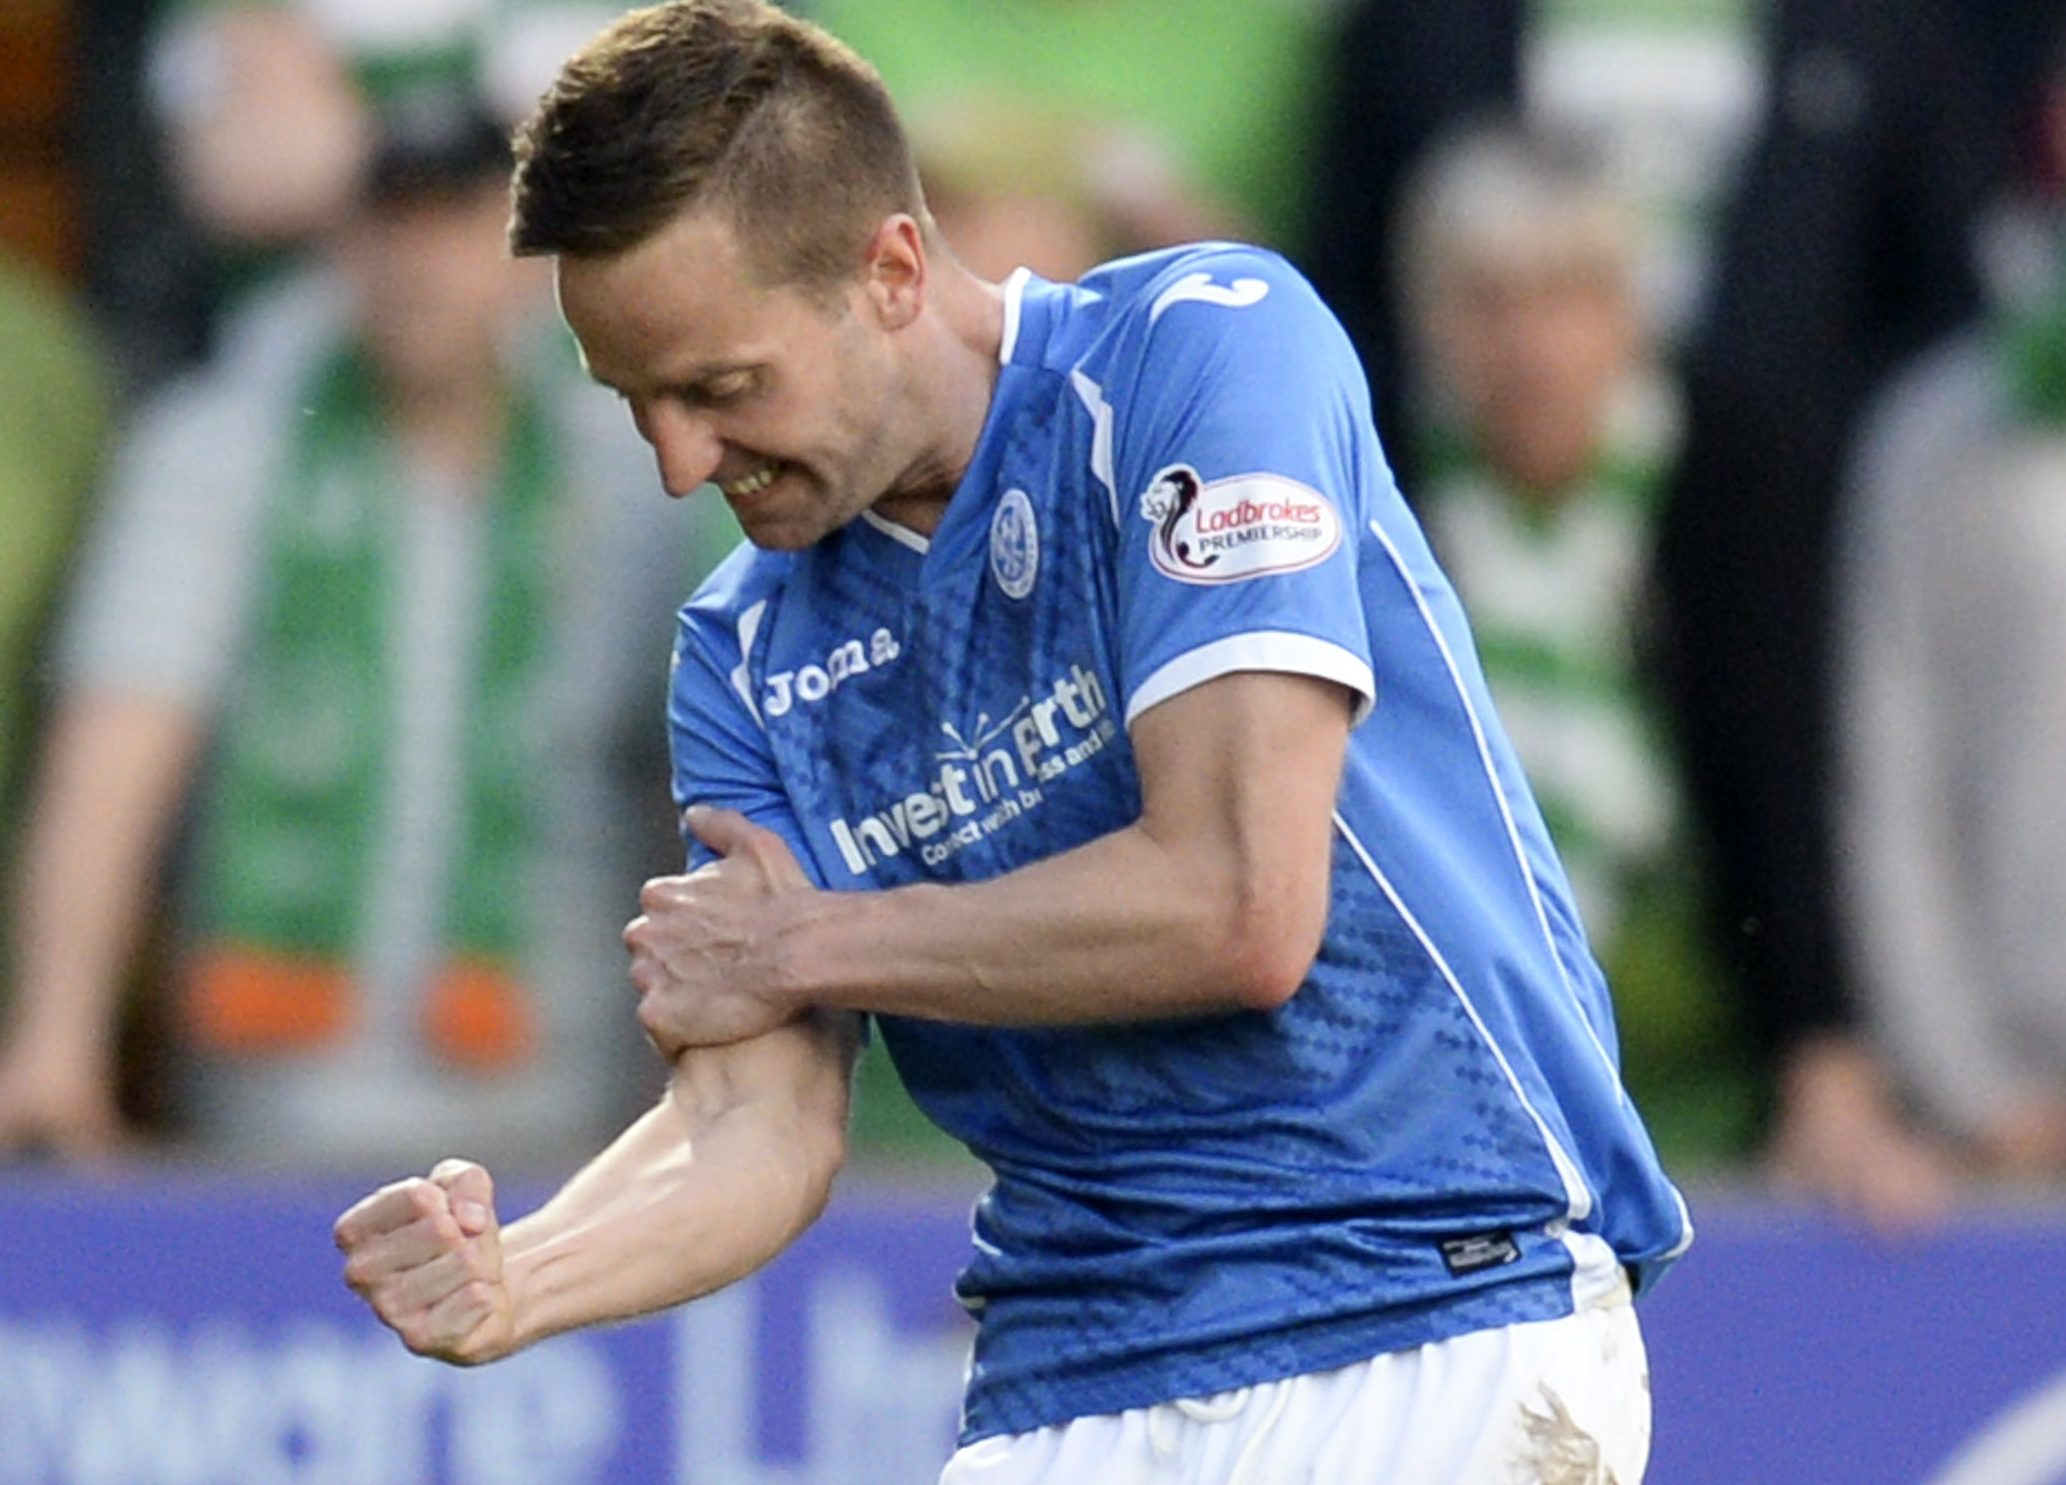 St Johnstone fans won't be seeing this celebration again.